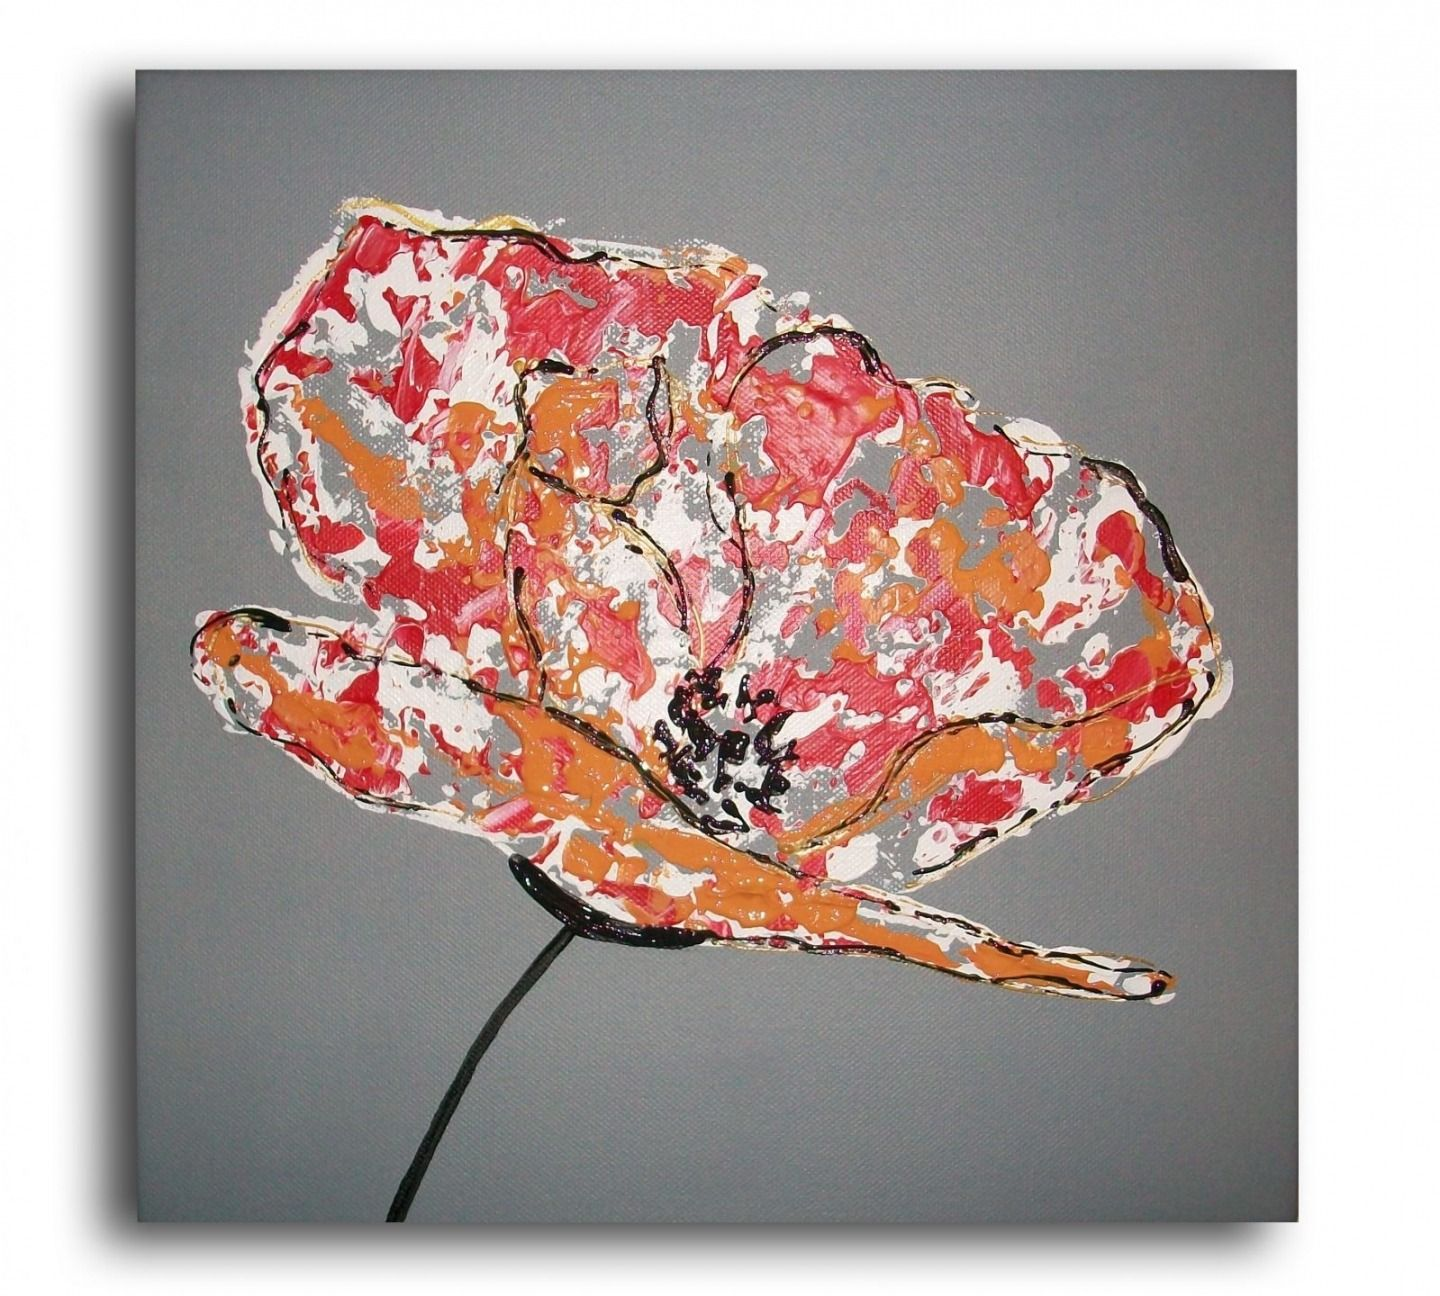 tableau toile coquelicot fleur rouge blanc gris moderne contemporain a fleurs rouges. Black Bedroom Furniture Sets. Home Design Ideas